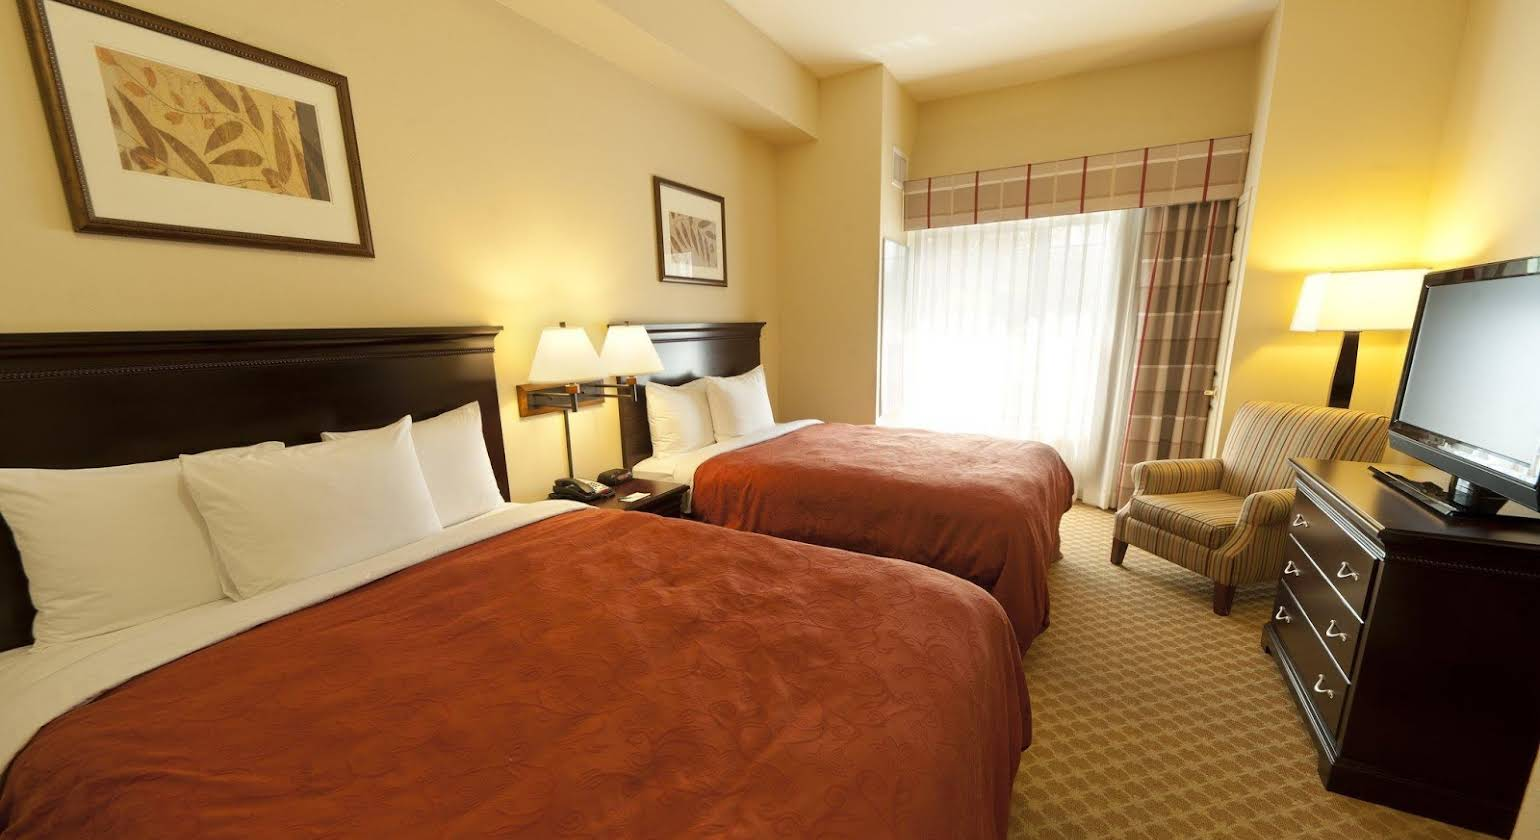 Country Inn & Suites by Radisson, Ontario at Ontario Mills